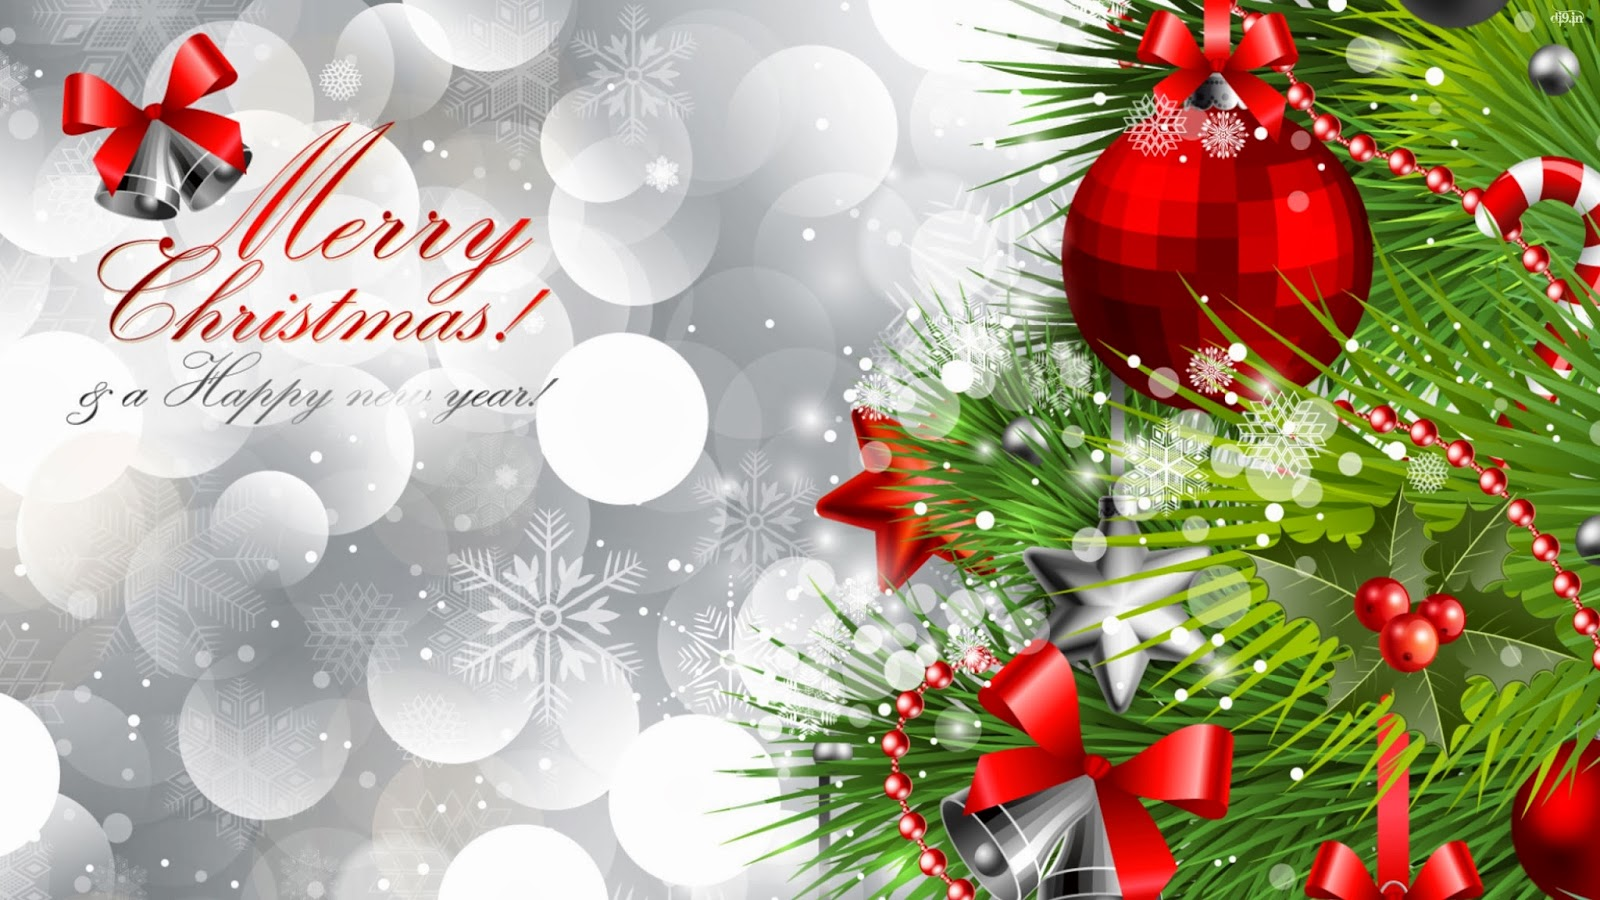 merry christmas and happy new year 2014 free wallpapers